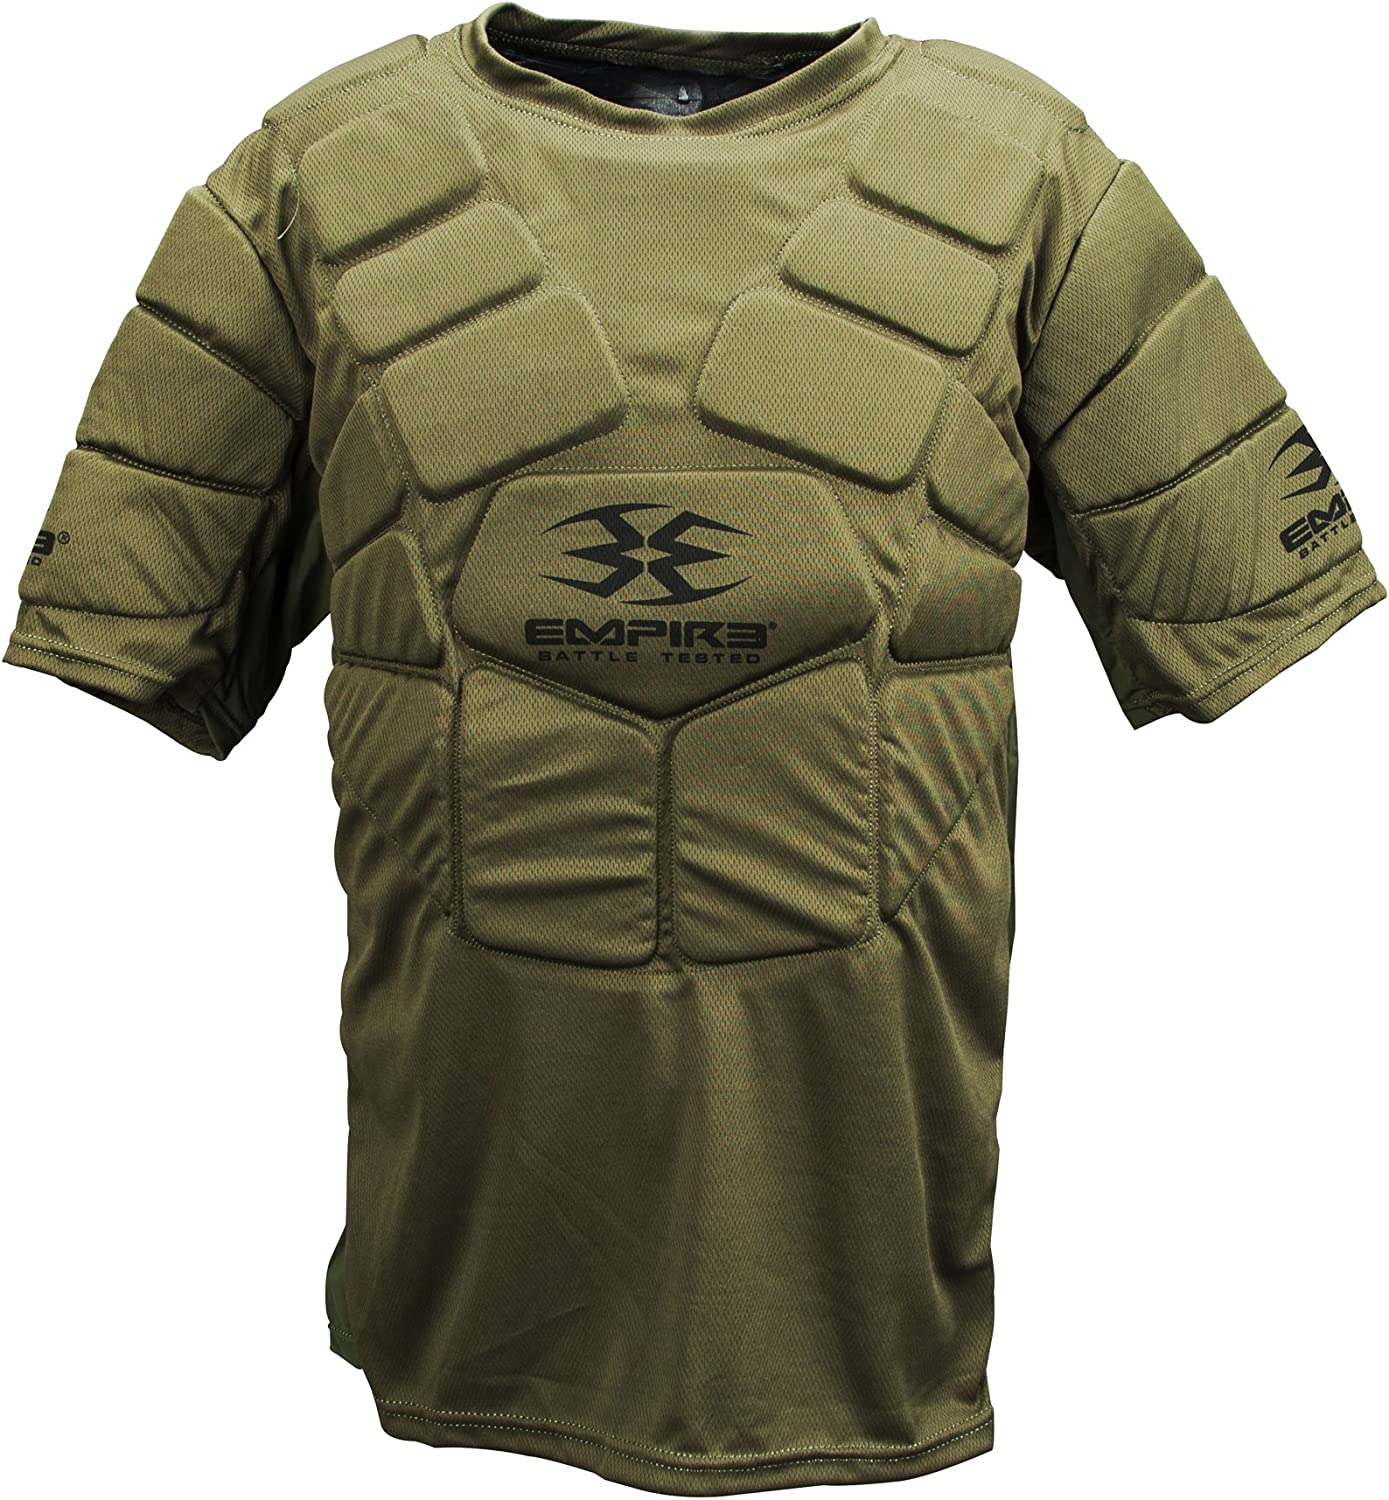 Empire Paintball BT Chest Protector